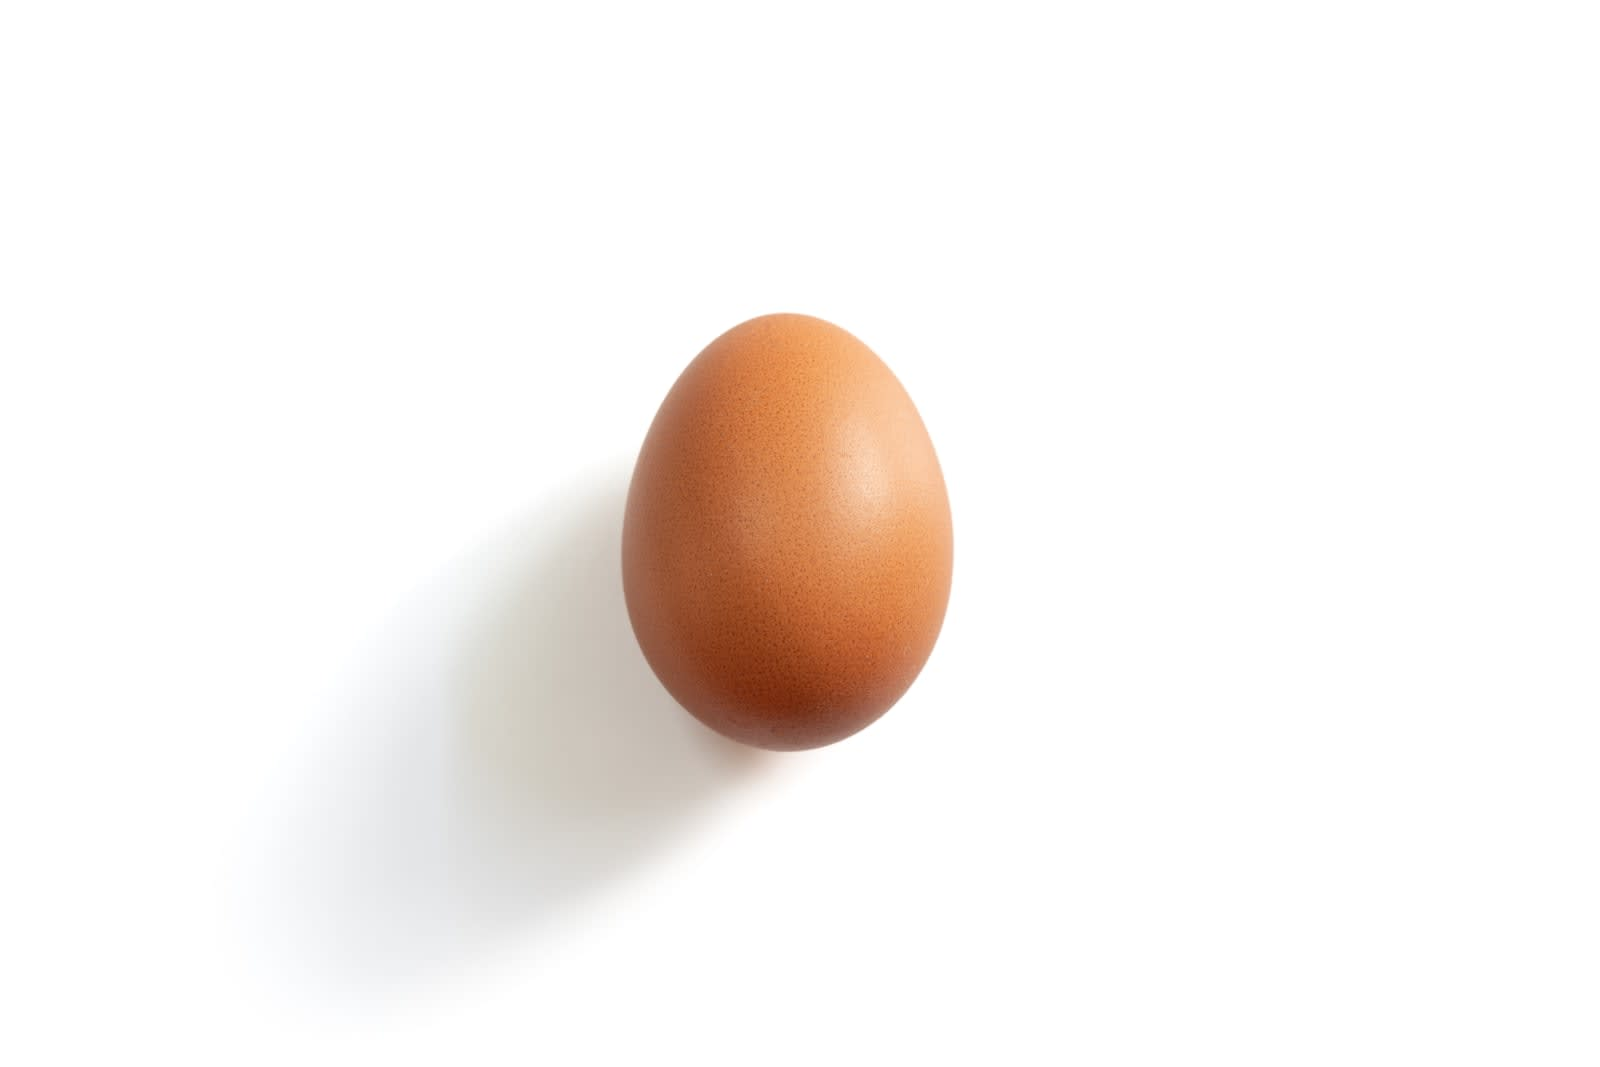 World Record Egg was one of the top tweets of 2019